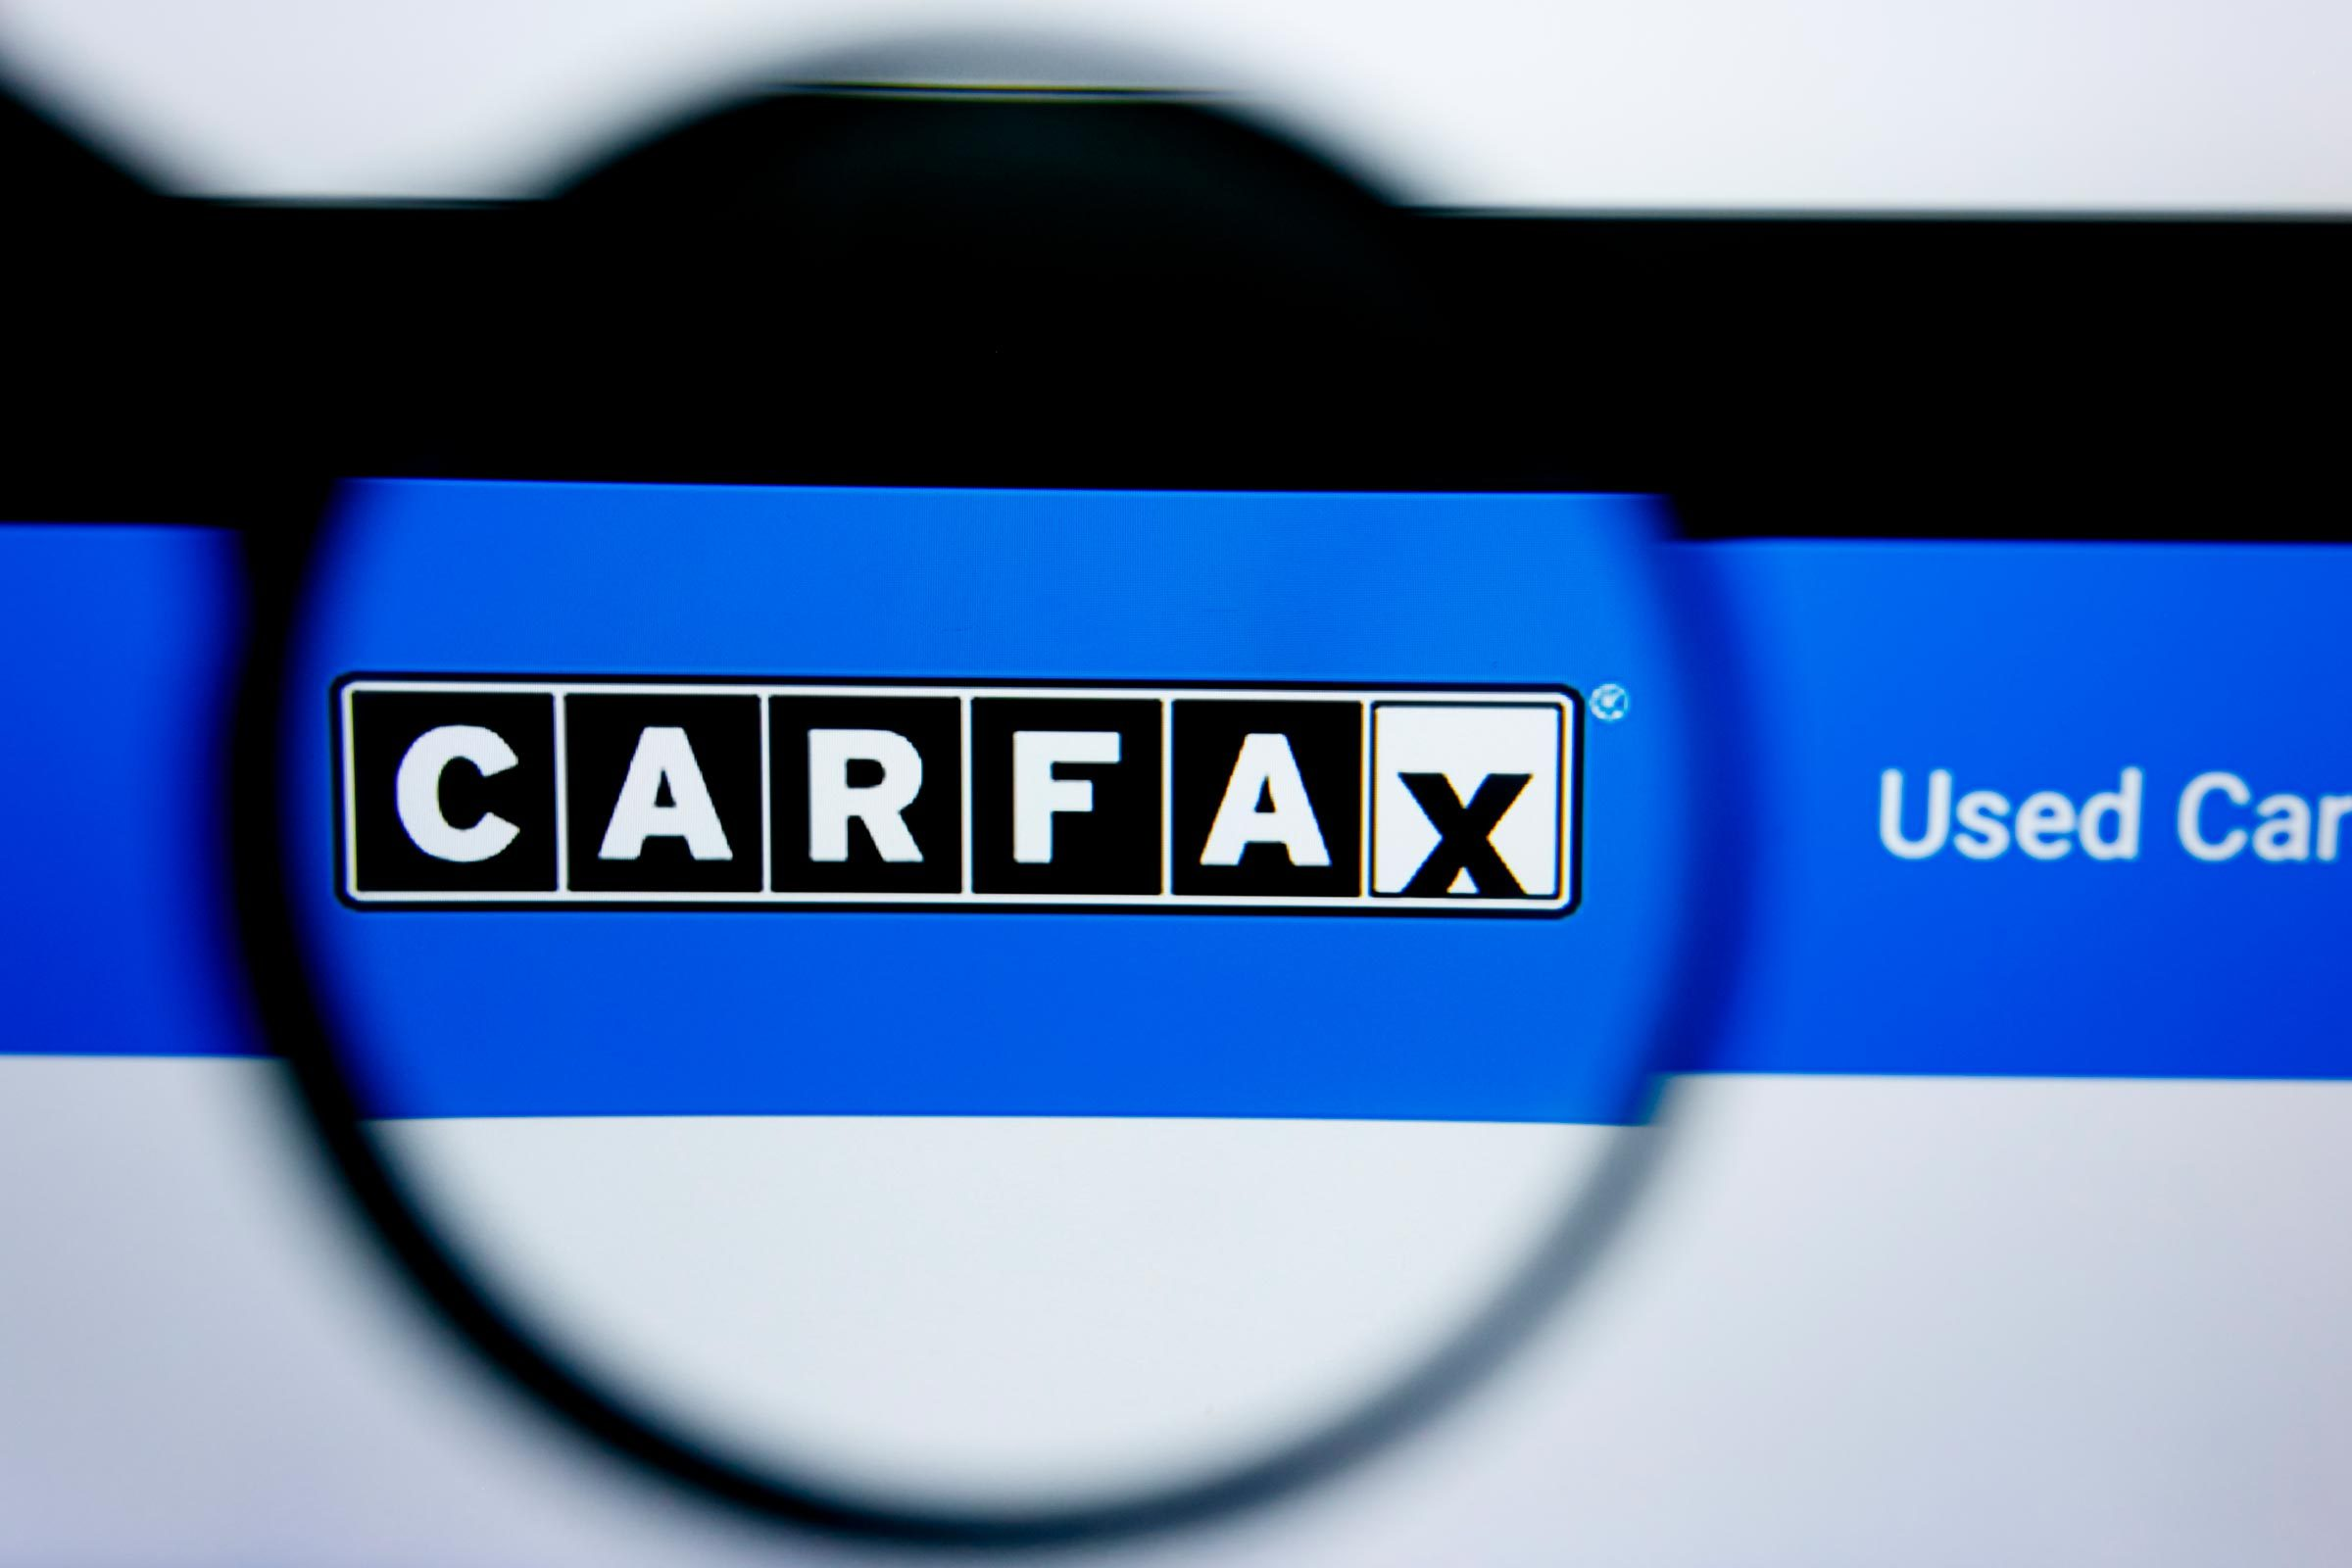 Carfax website homepage. Carfax logo visible on display screen.